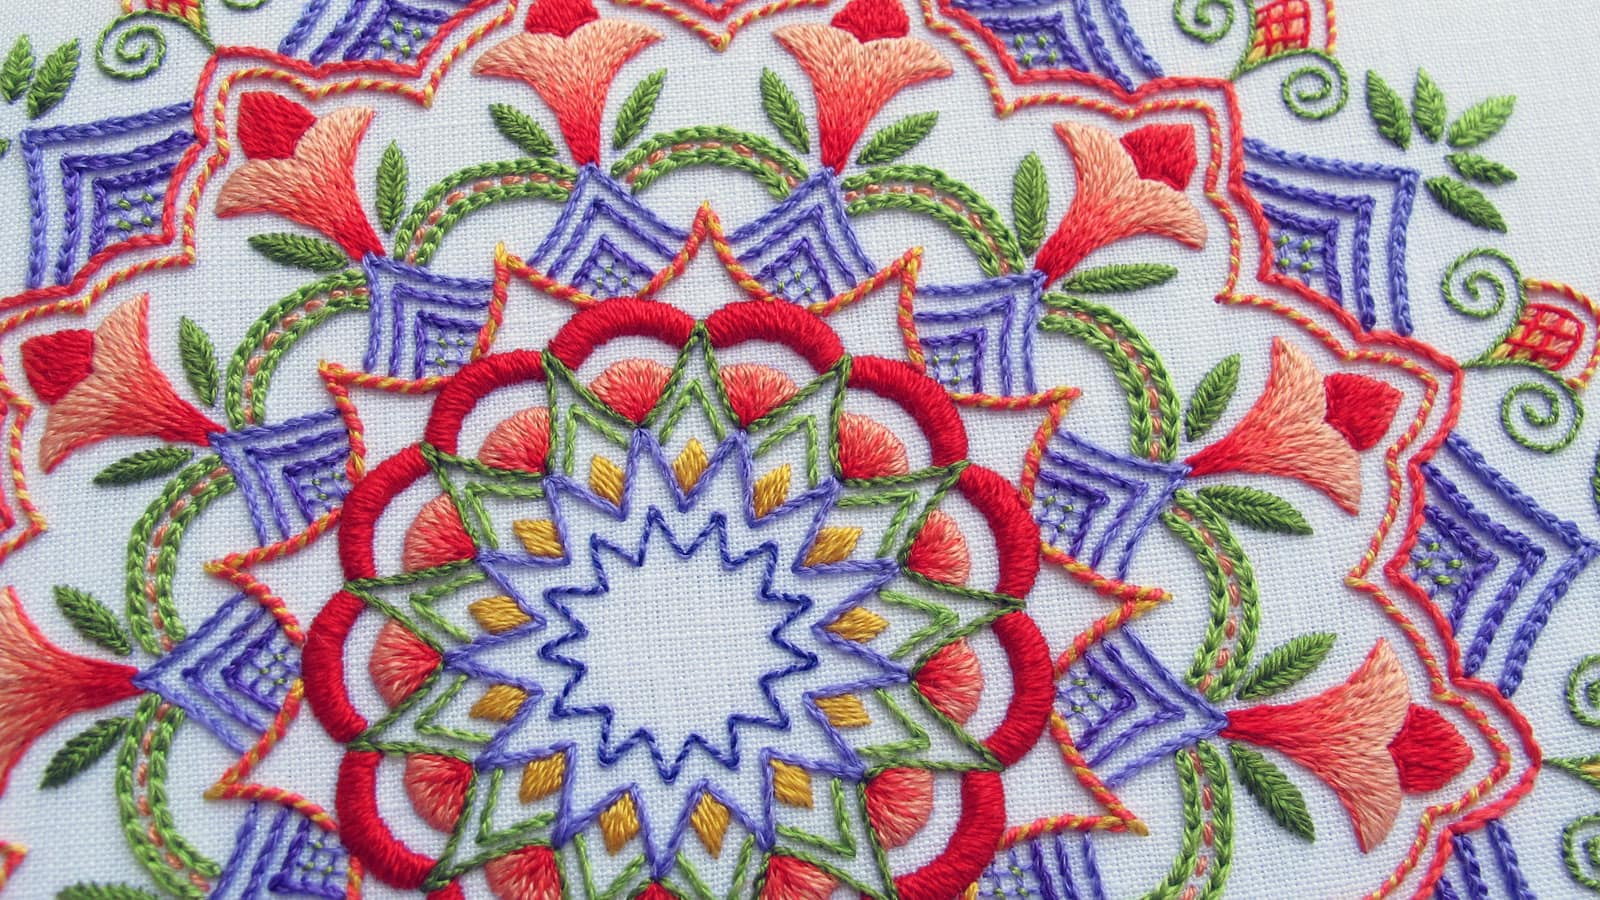 Needlenthread Com Tips Tricks And Great Resources For Hand Embroidery